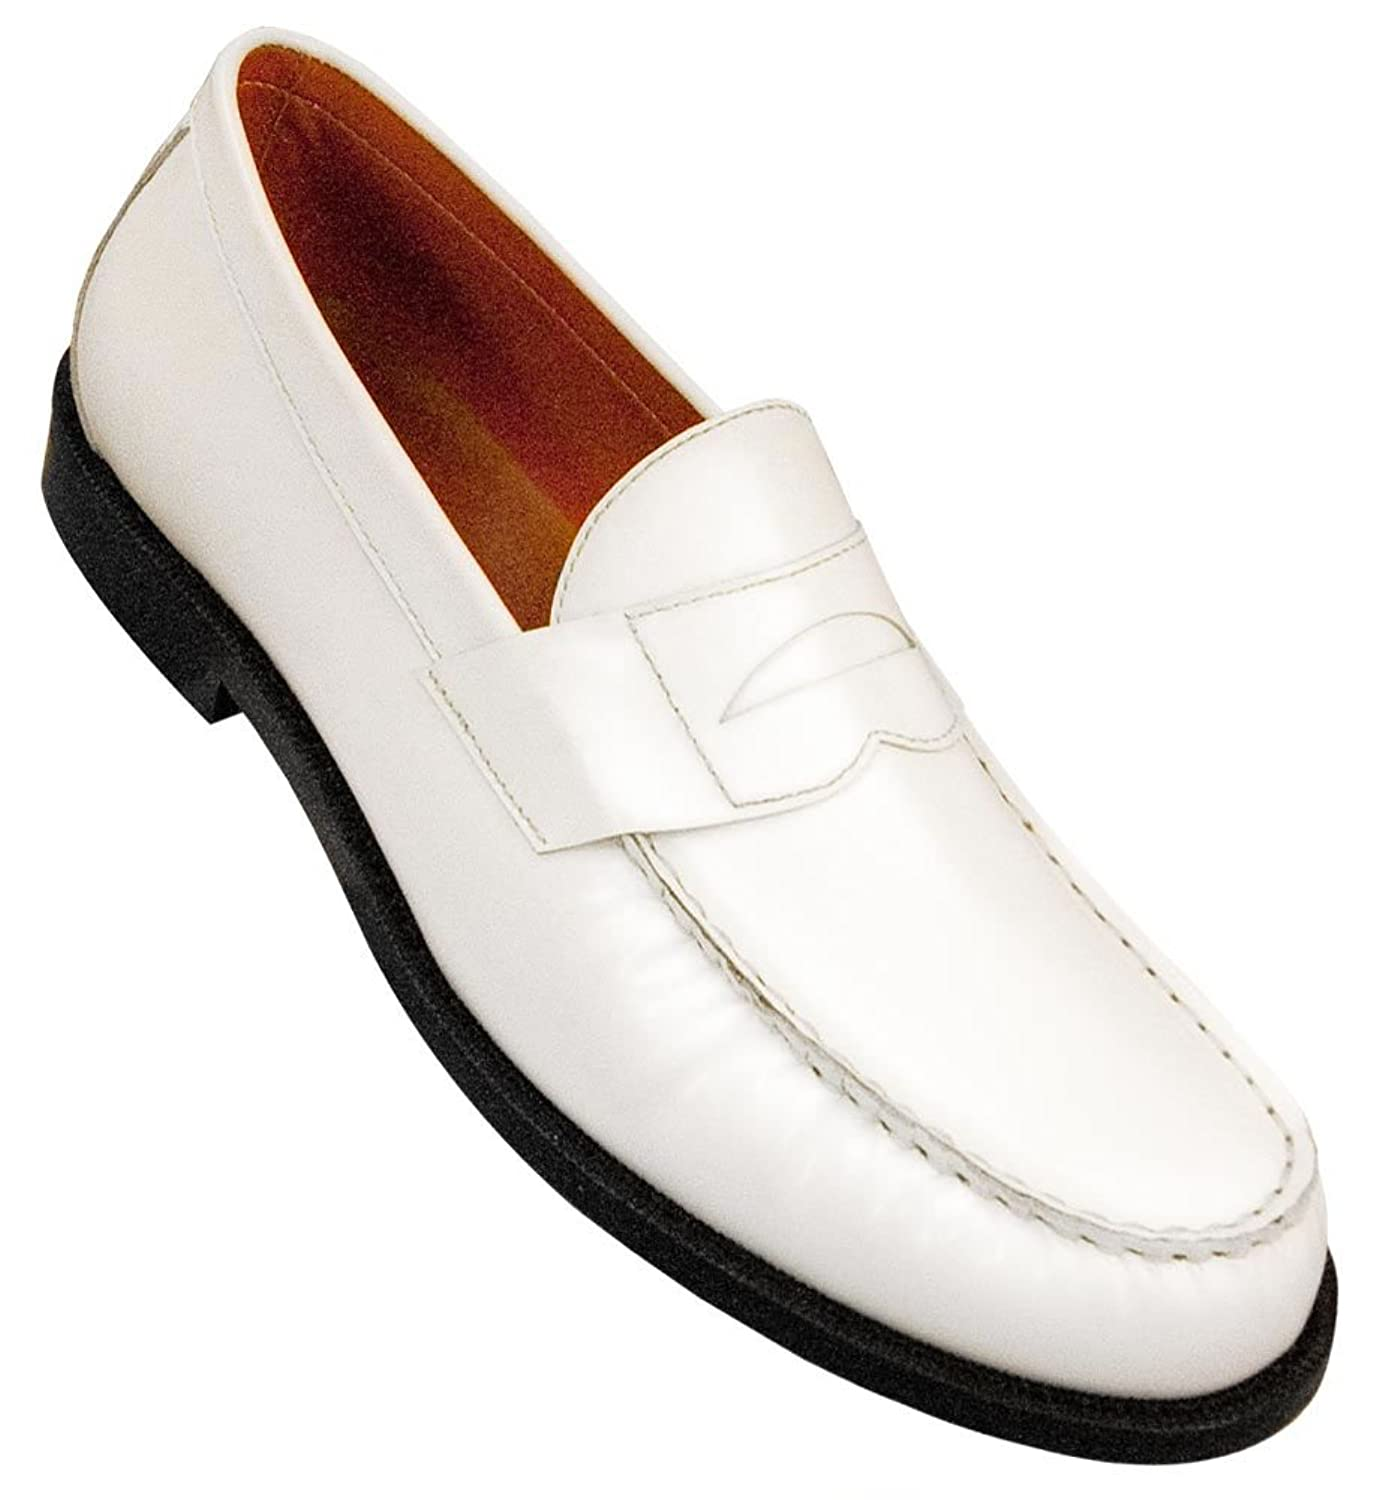 1940s Style Mens Shoes Aris Allen Mens White Dance Loafers $48.95 AT vintagedancer.com